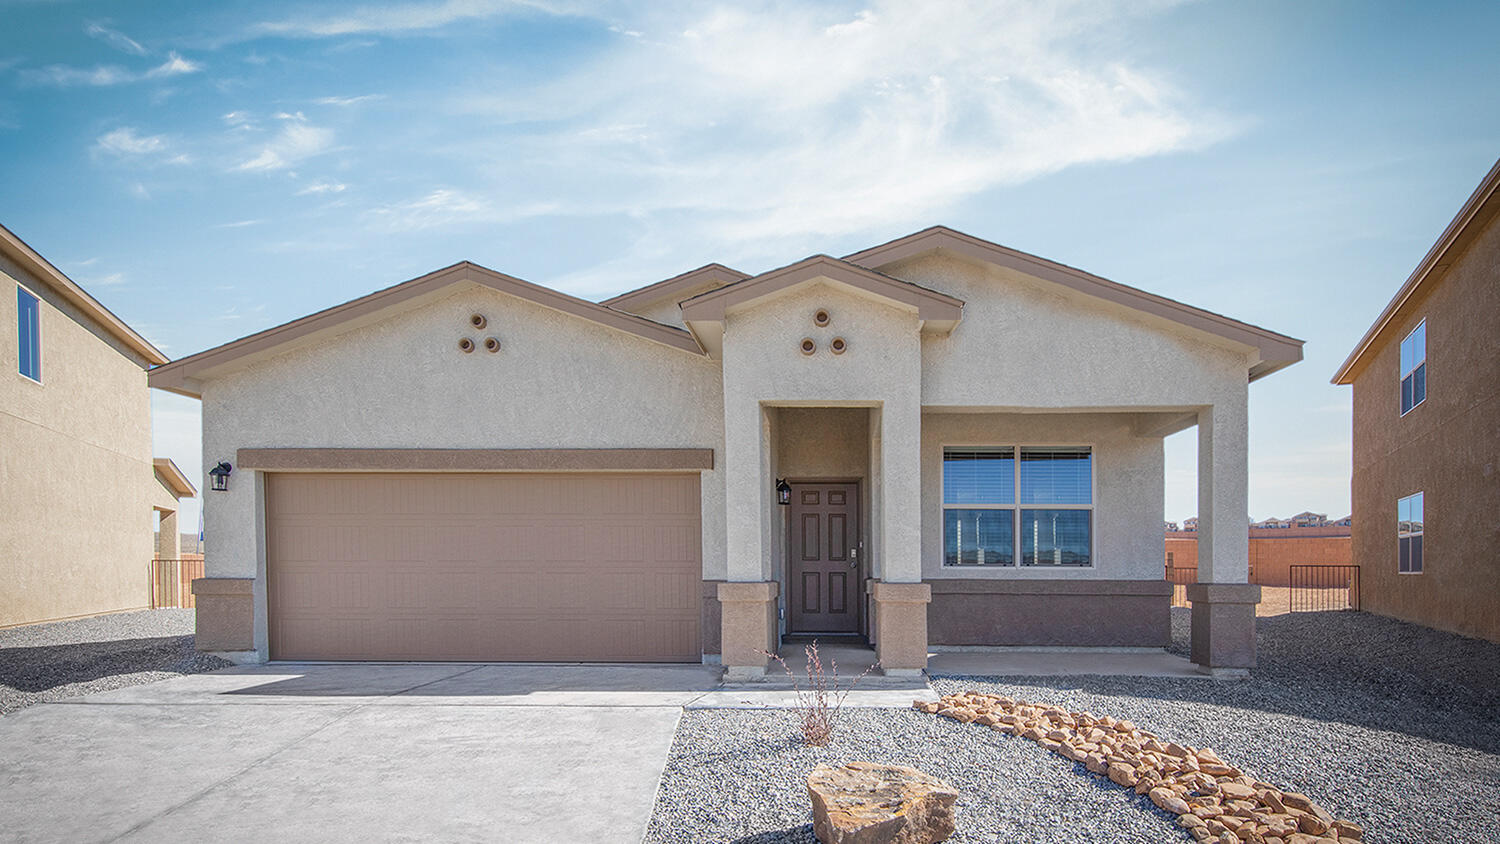 home sold before put on market